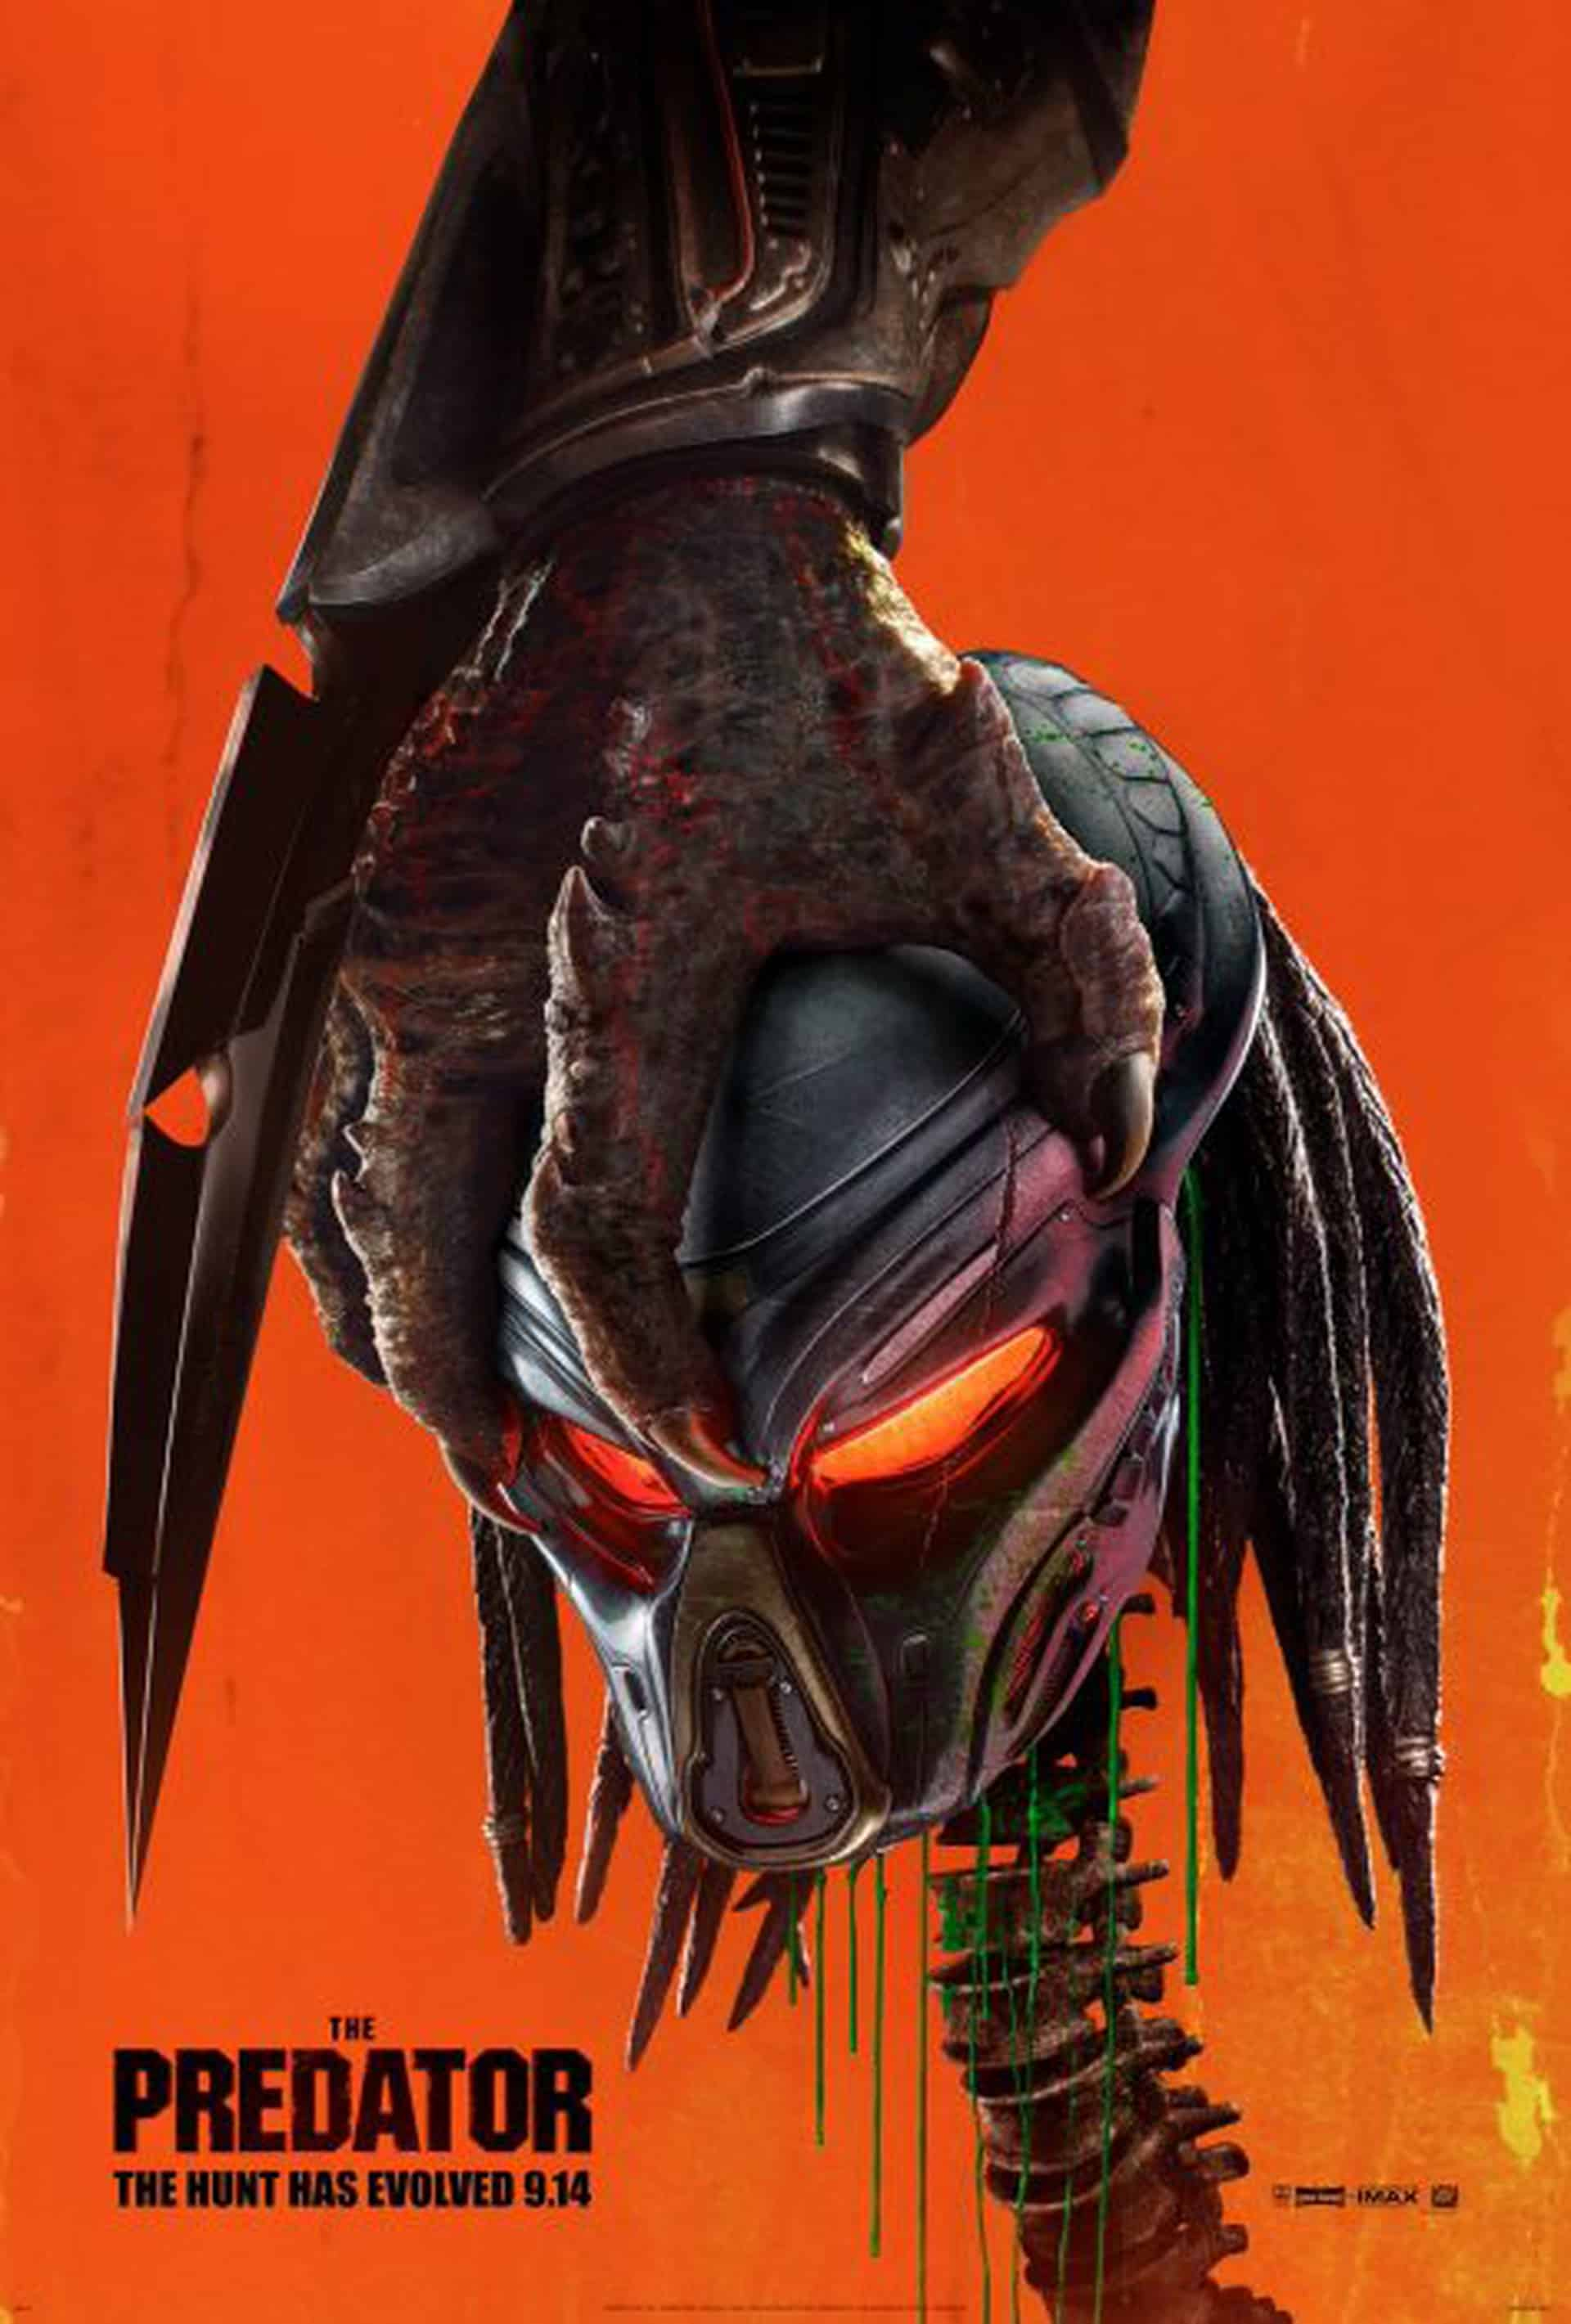 The Predator poster, Cinematographe.it